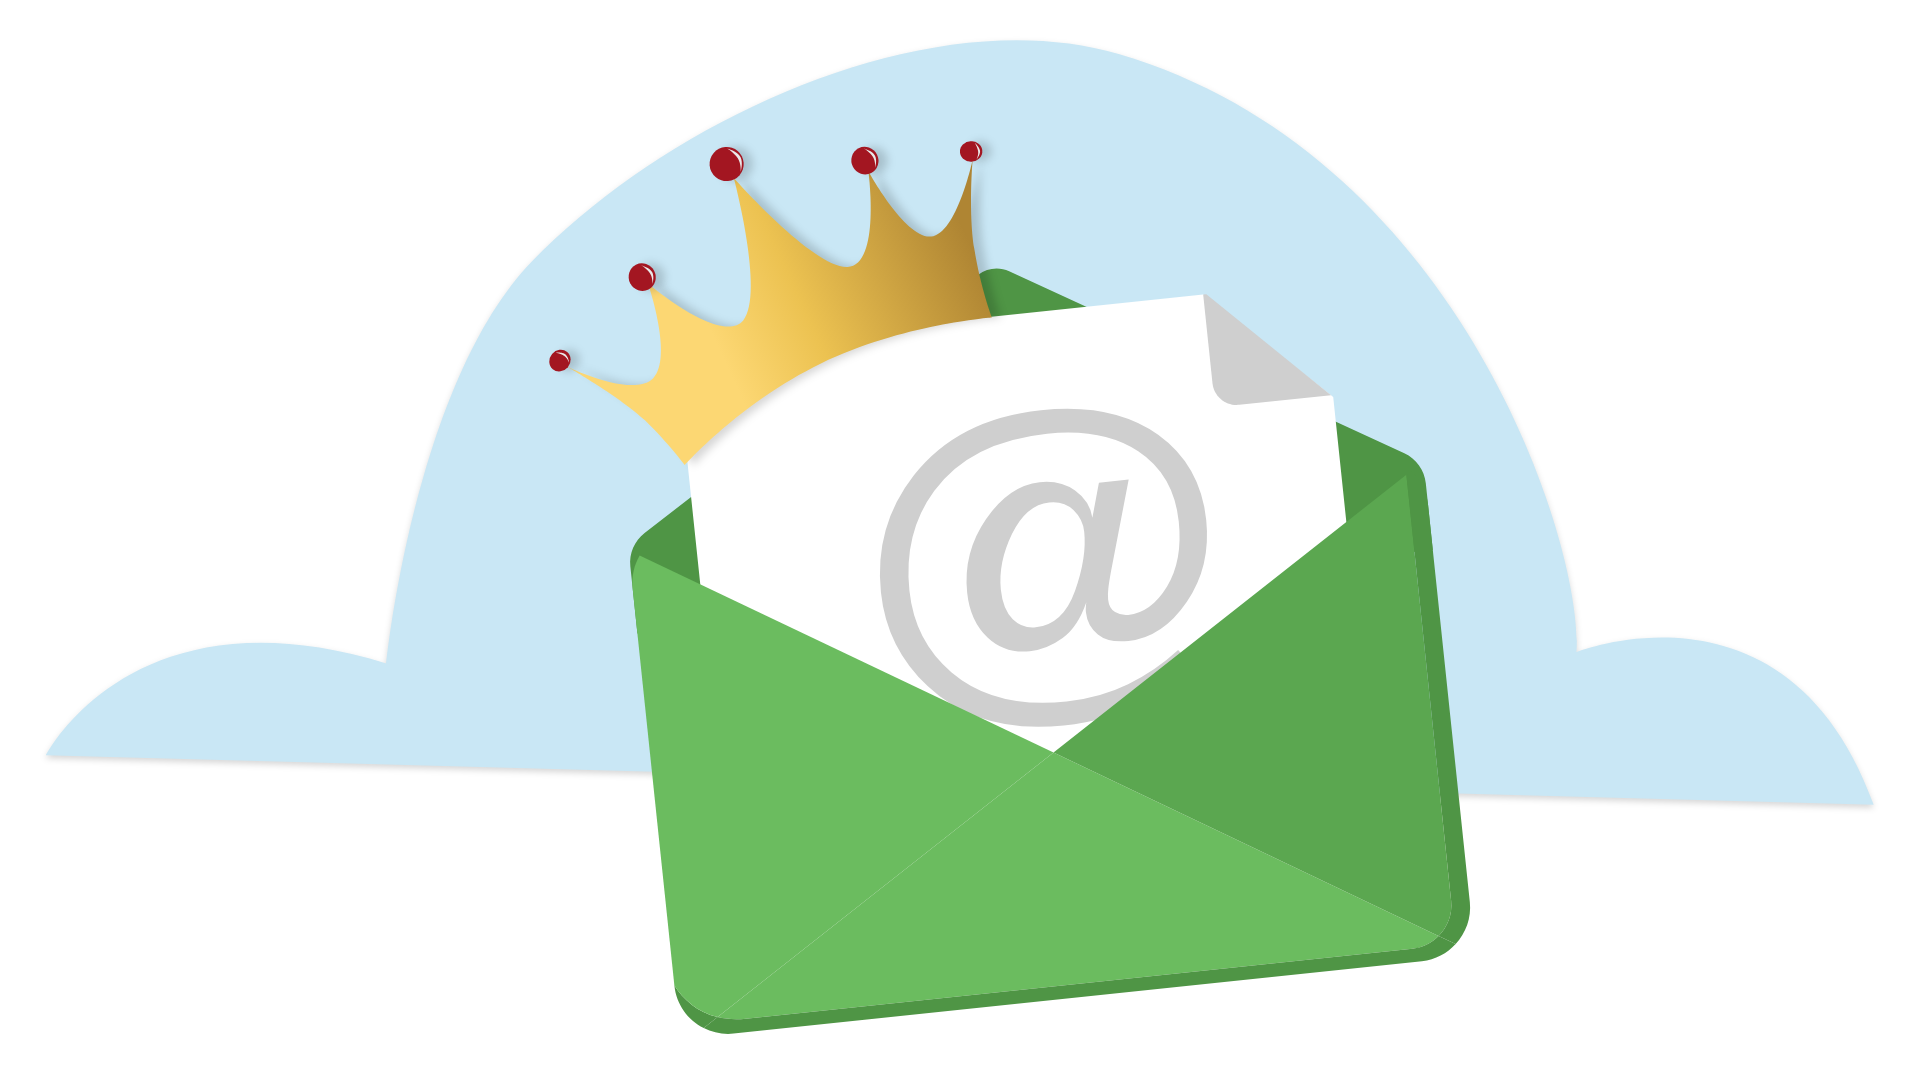 Email icon with a crown on top. Illustration.